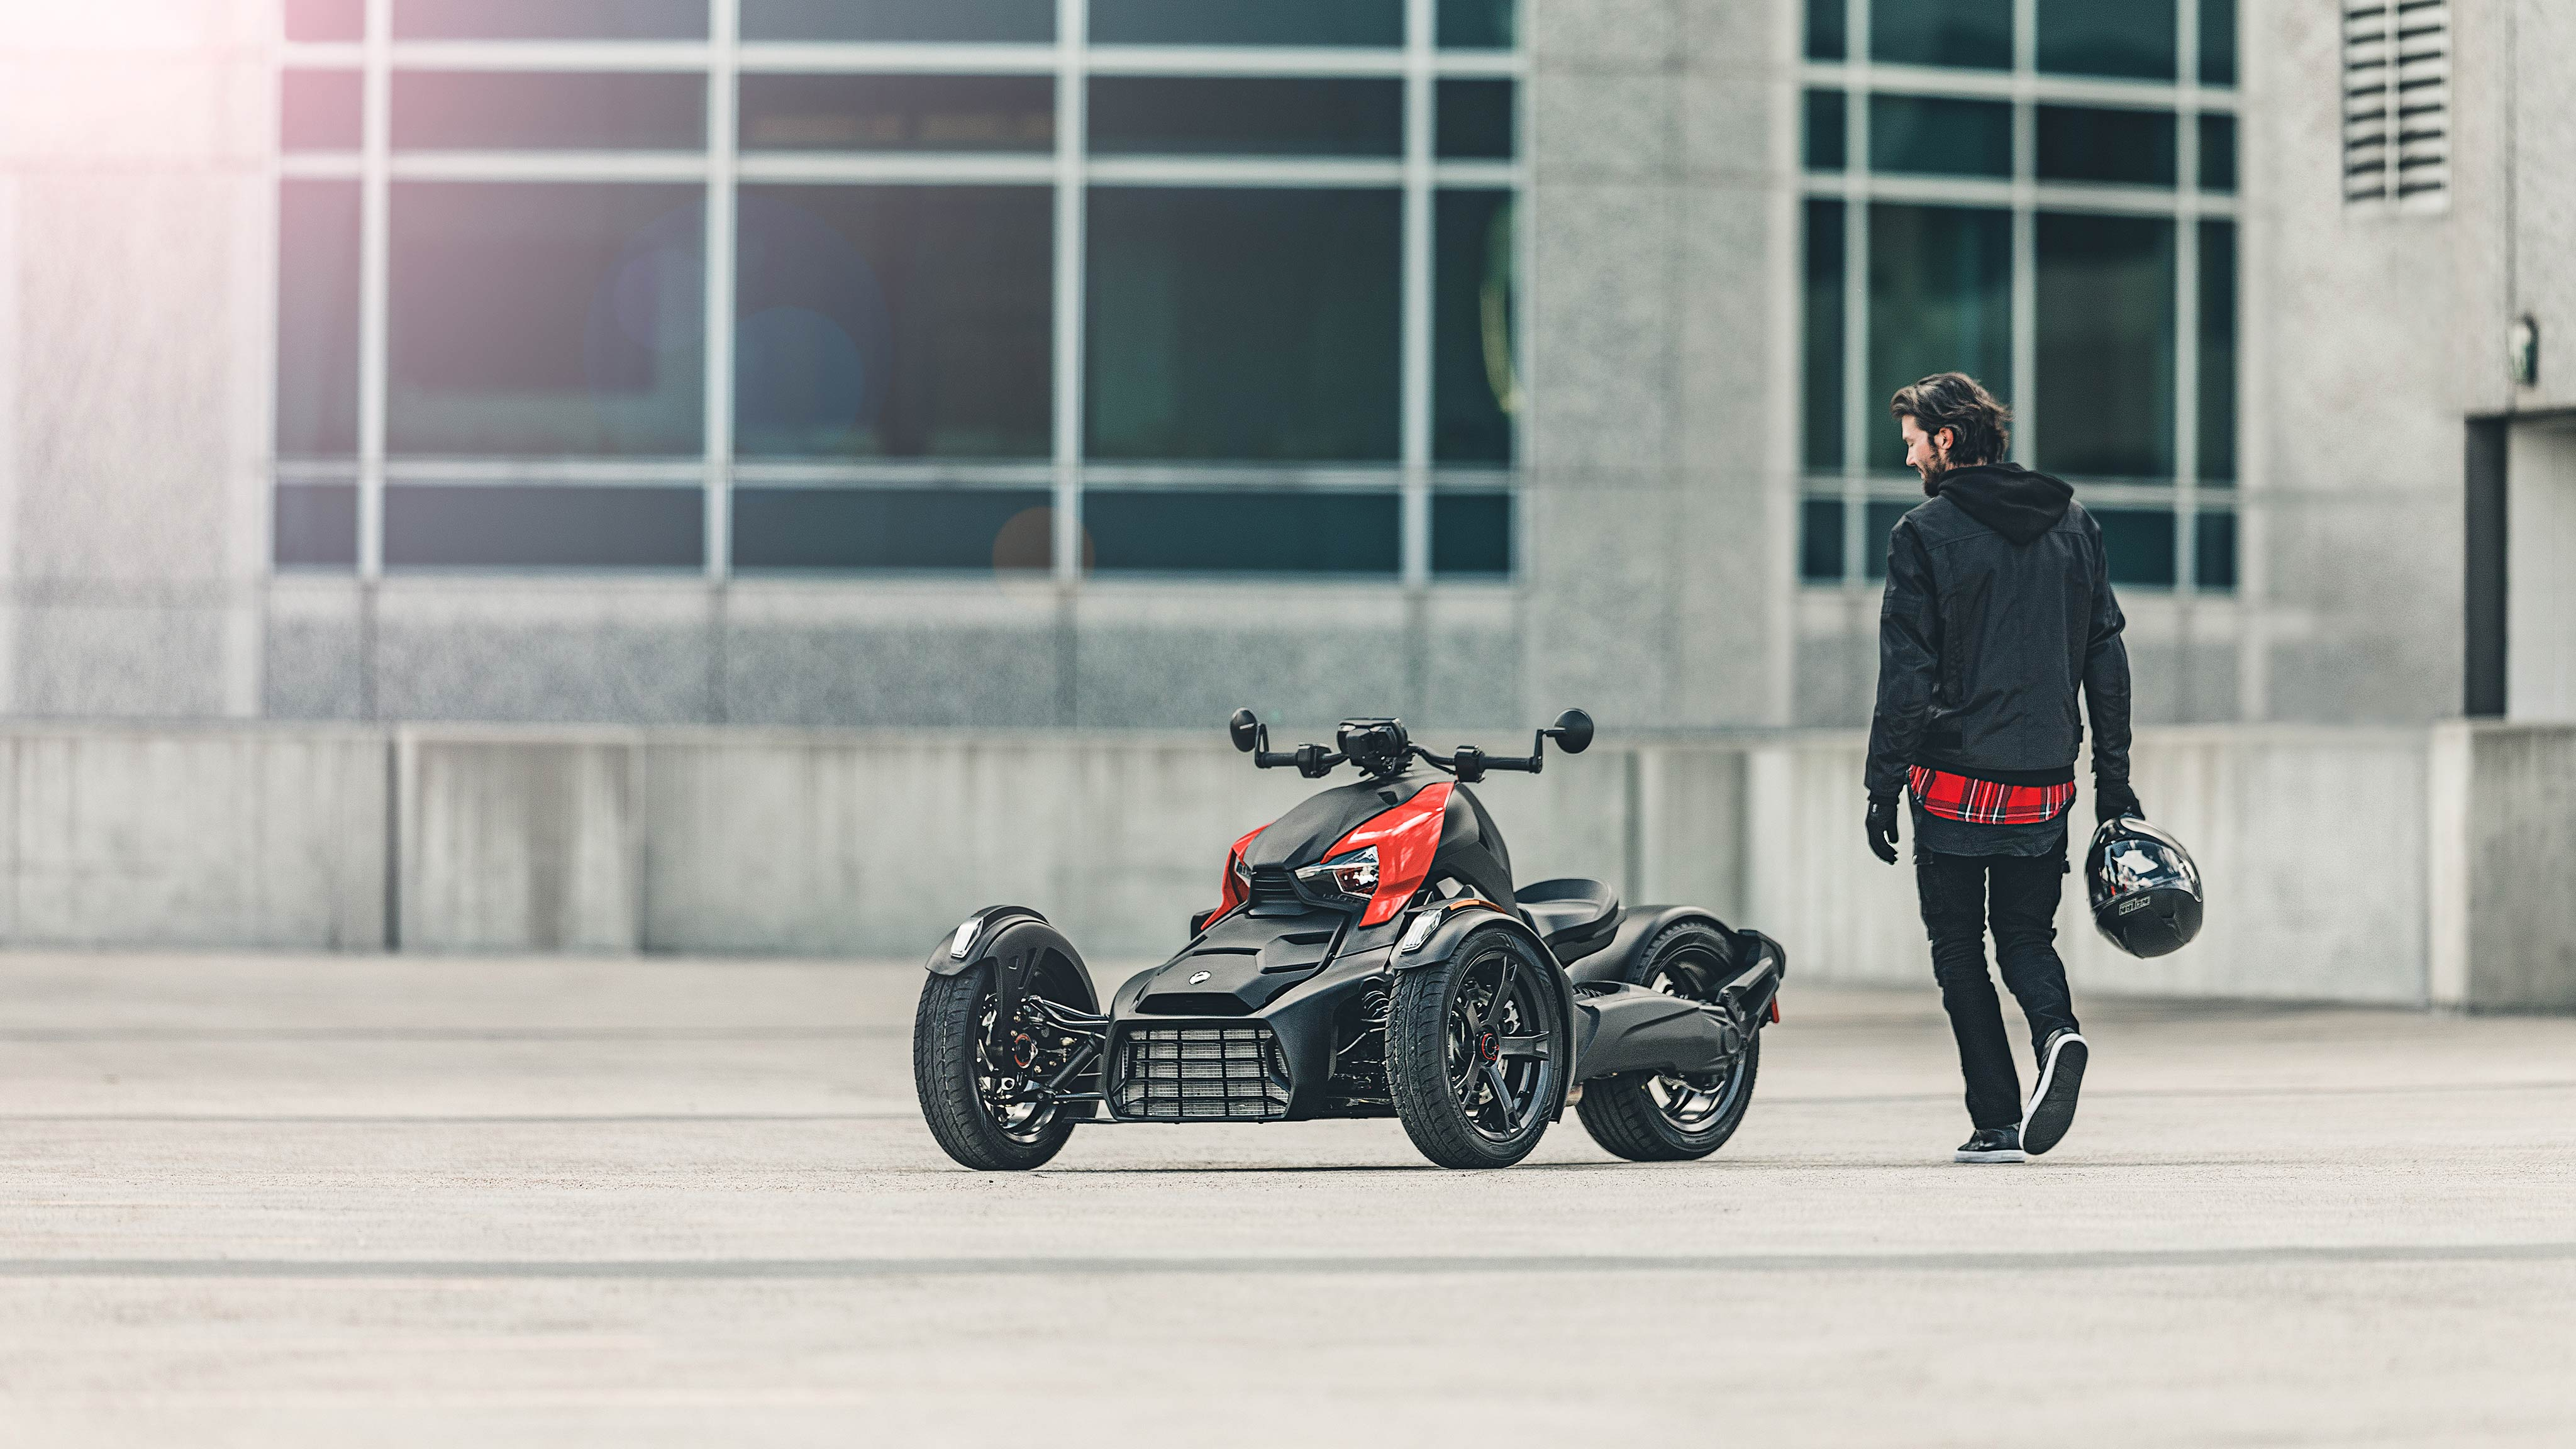 A man, helmet in hand, walking toward his Can-Am vehicle with Adrenaline Red panels parked in an empty concrete lot